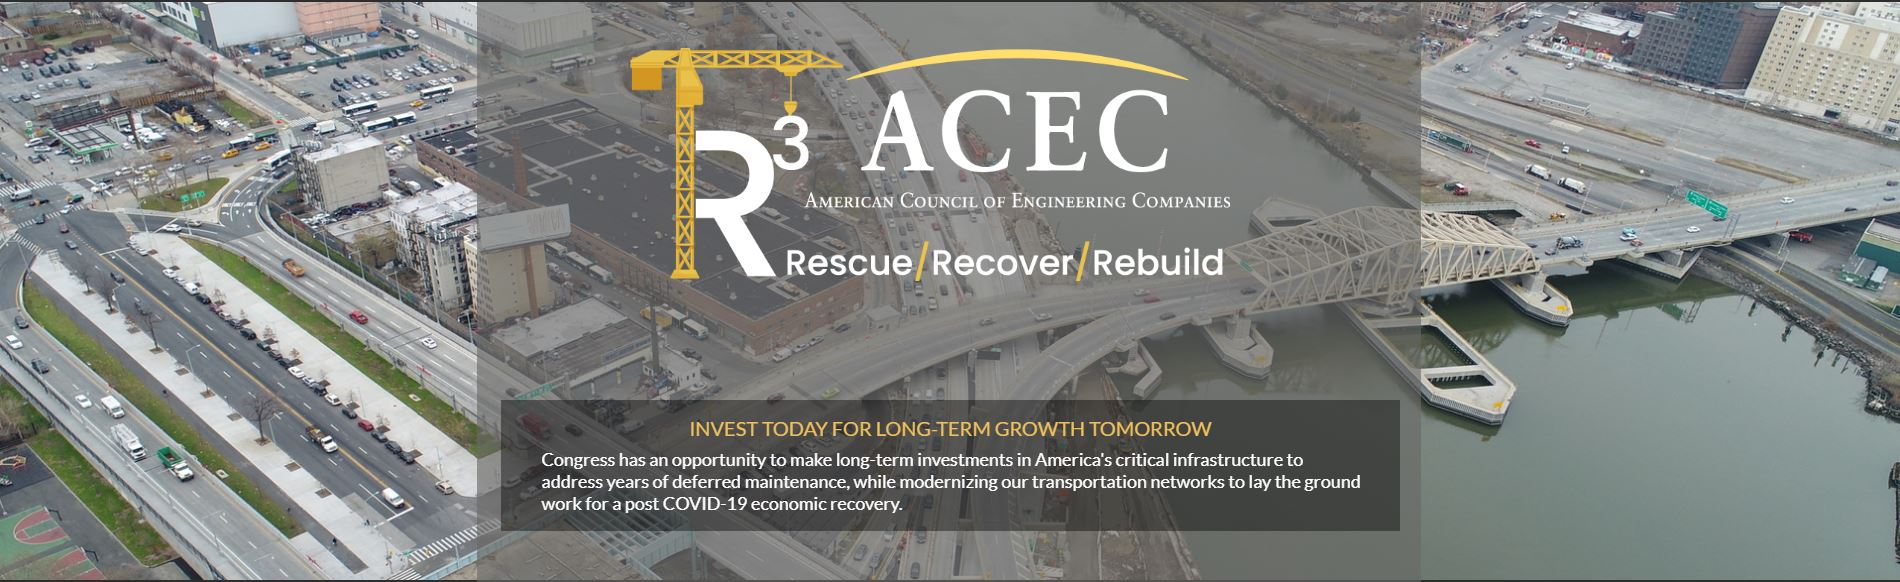 Rescue-Recover-Rebuild-Website-Graphic.JPG